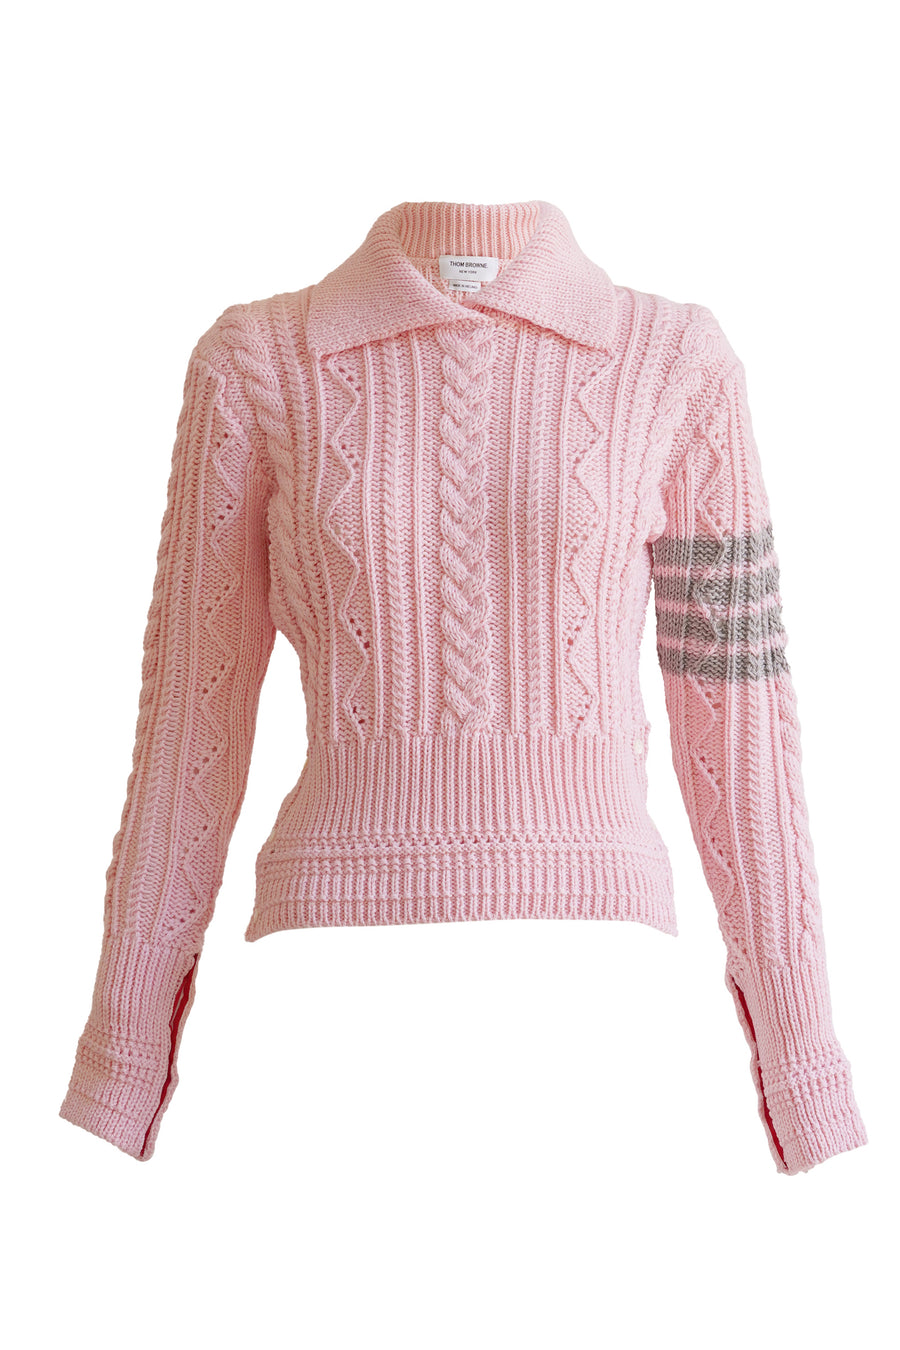 4 Bar Cable Classic Collared Crewneck in Pink